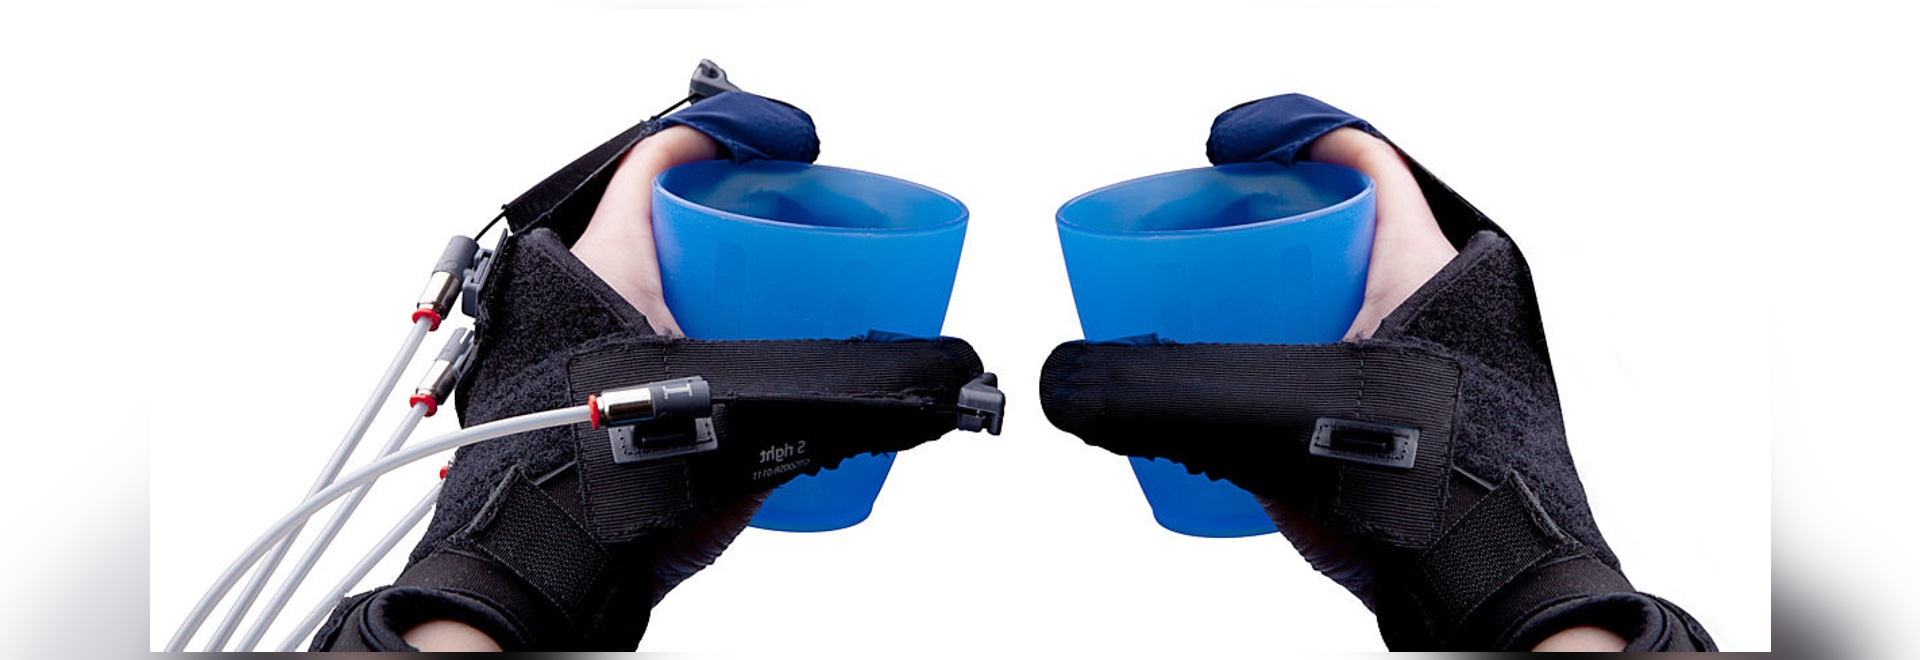 Gloreha Sinfonia: sensor glove for bimanual exercise